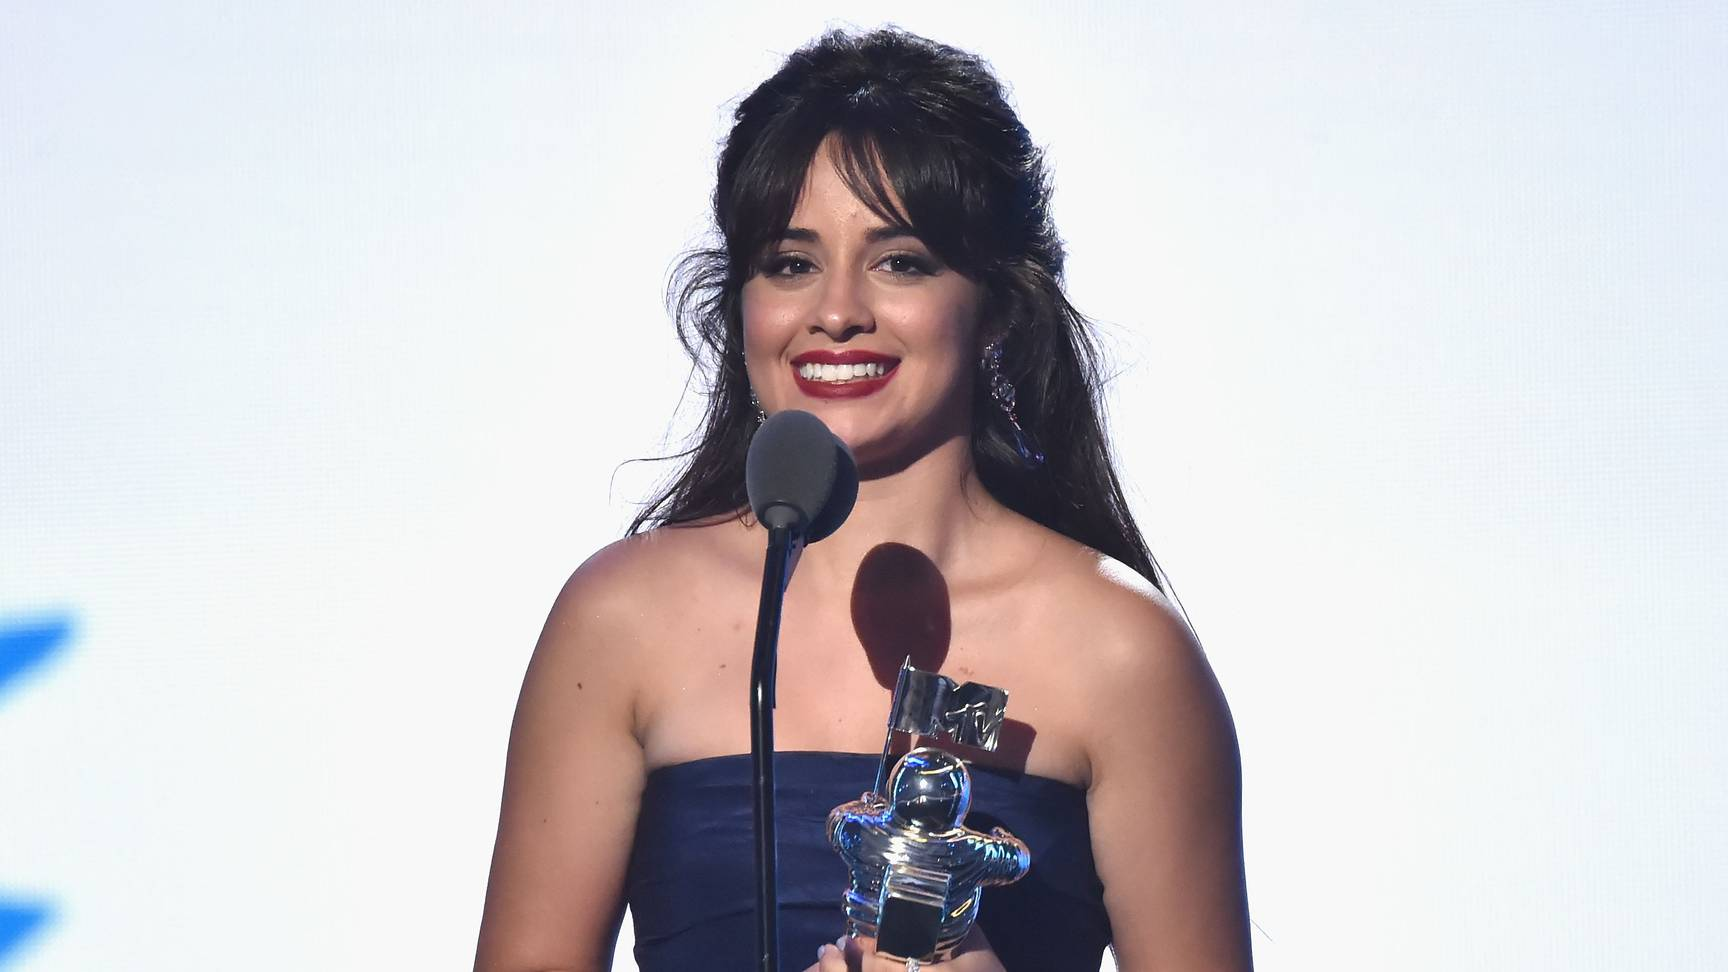 Camila Cabello was adorably flustered during her #VMA speech for Artist of the Year: https://t.co/s9cvxYCA6b https://t.co/yh3Zmenx9b